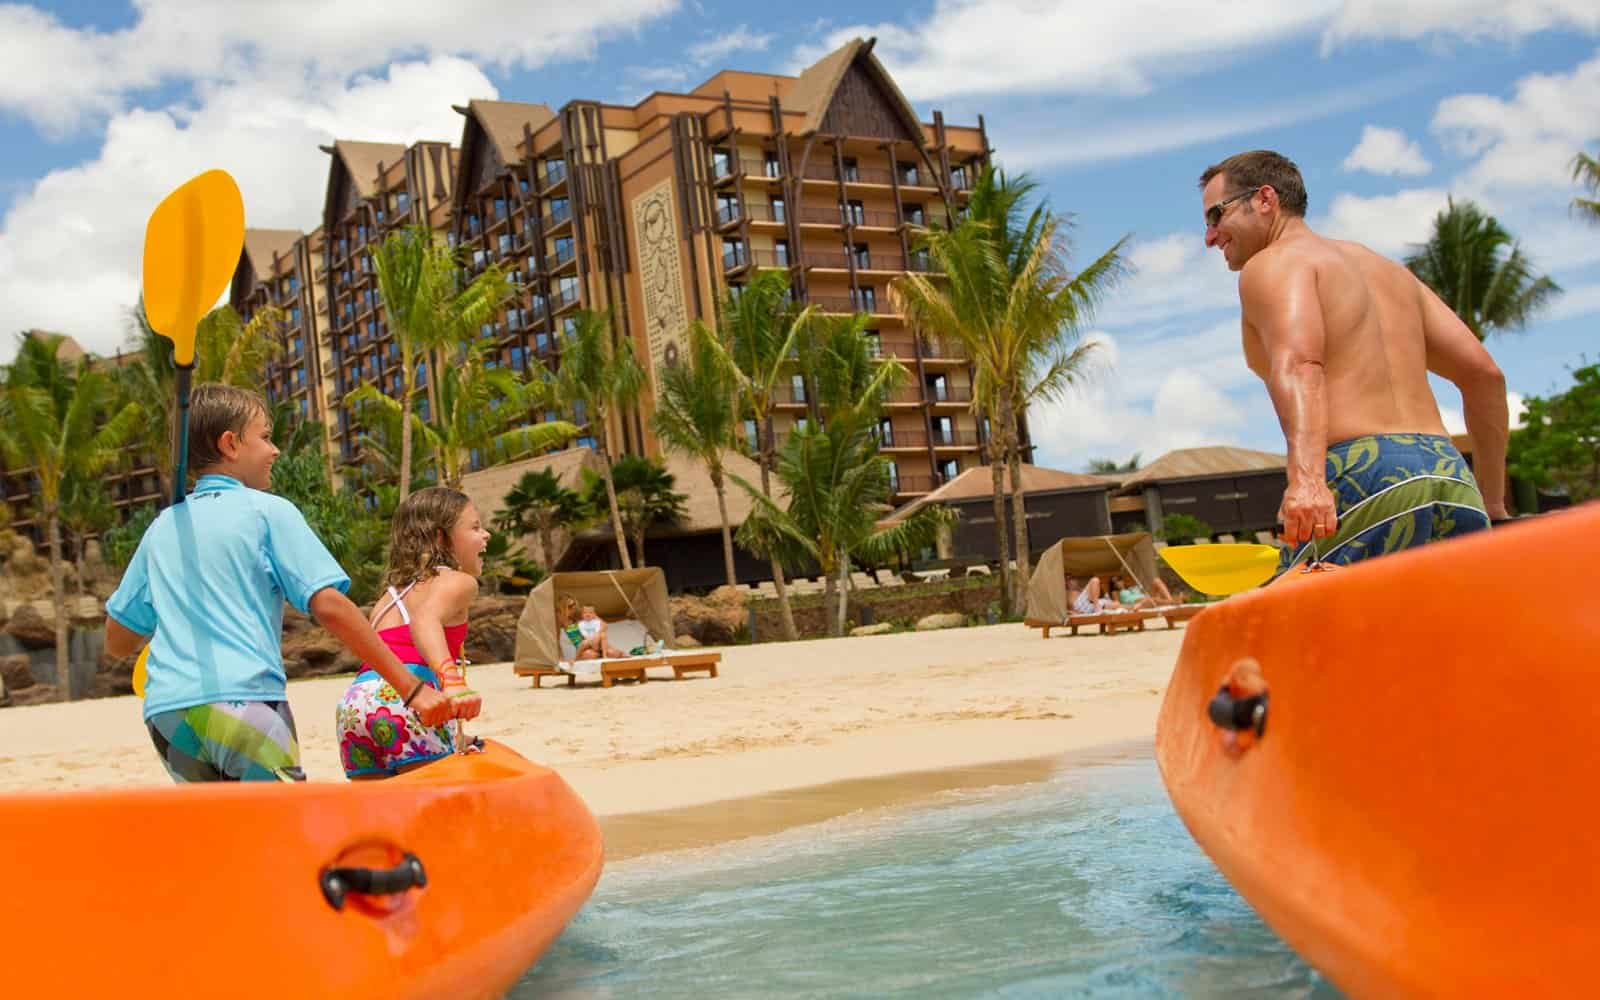 Beach hotel for kids and families